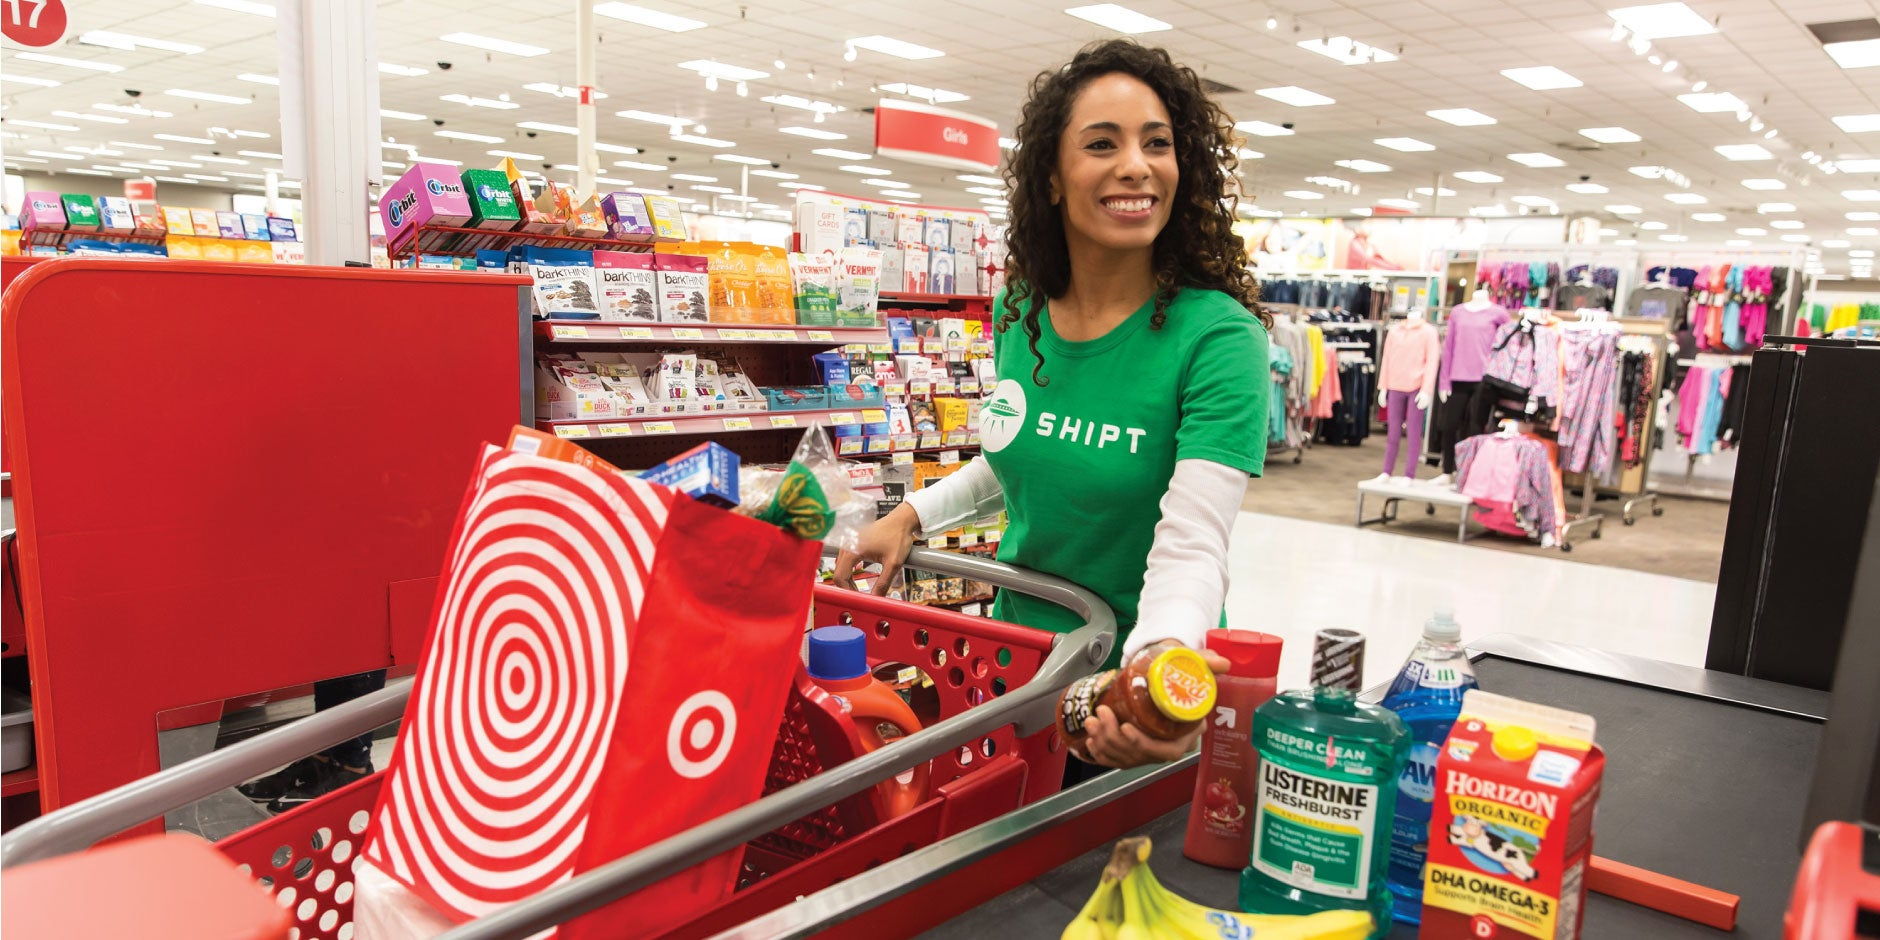 3 Ways Target Is Outflanking Amazon